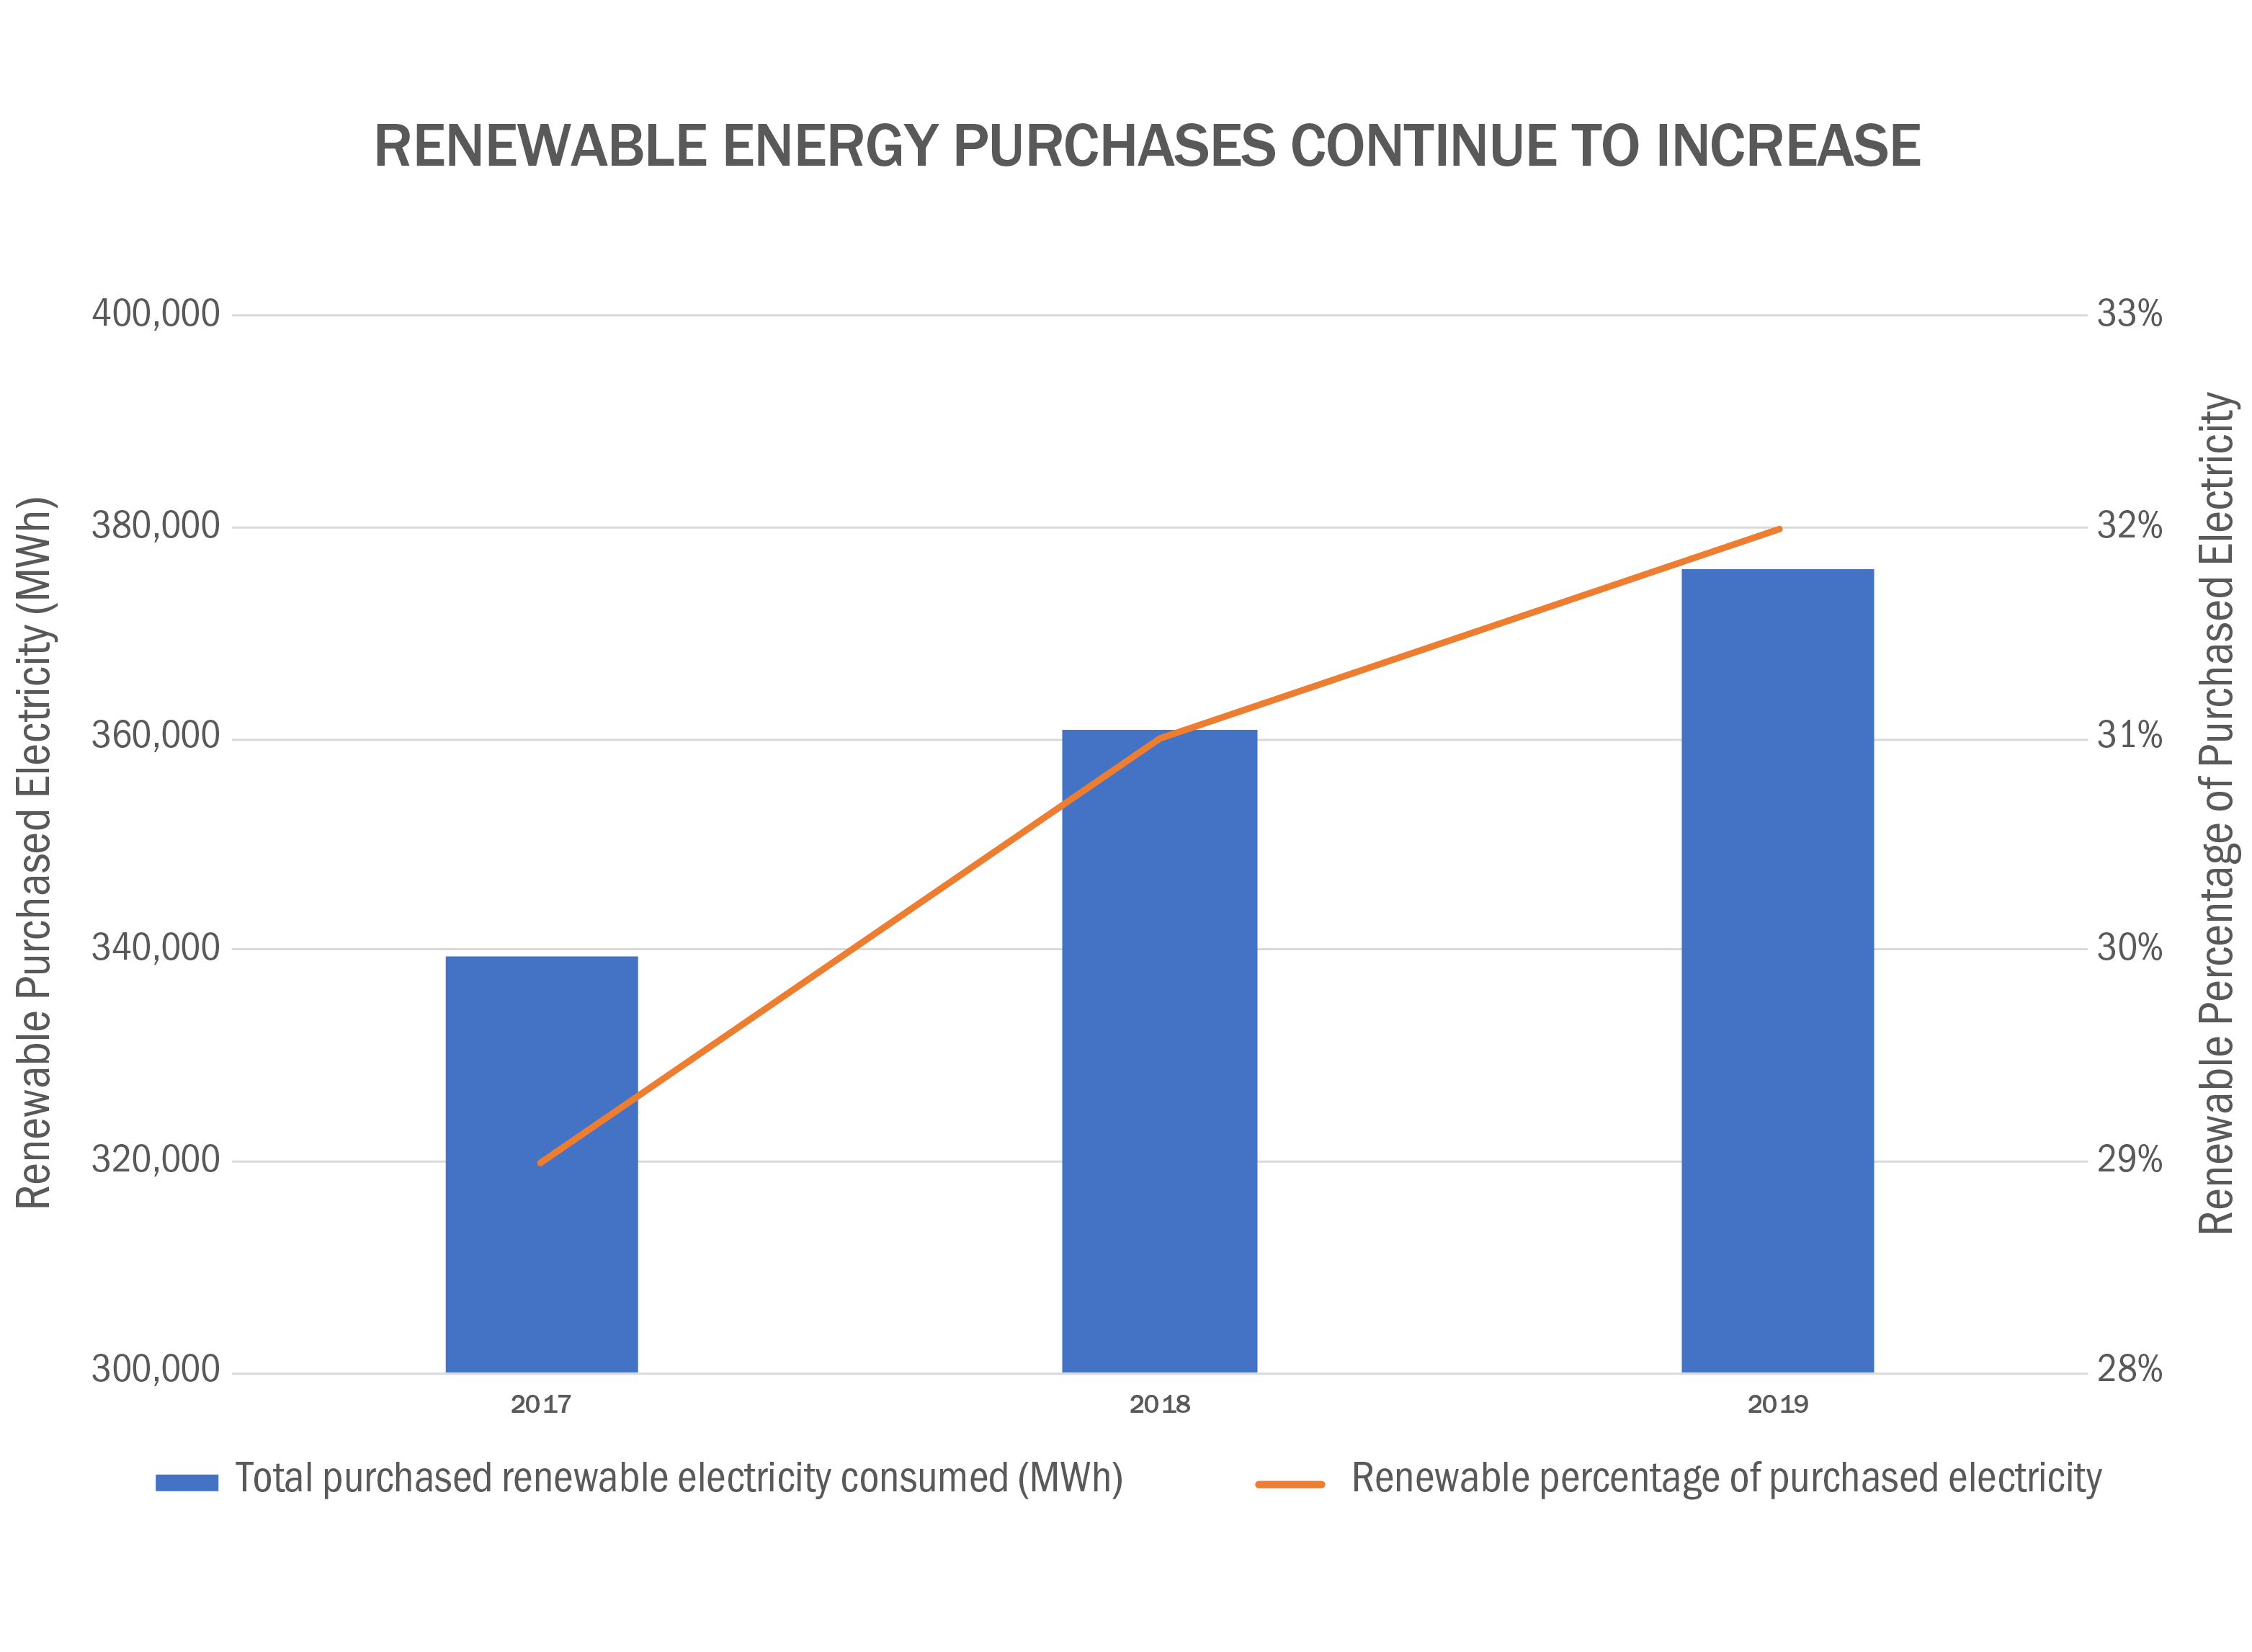 Renewable Energy Purchases Continue to Increase